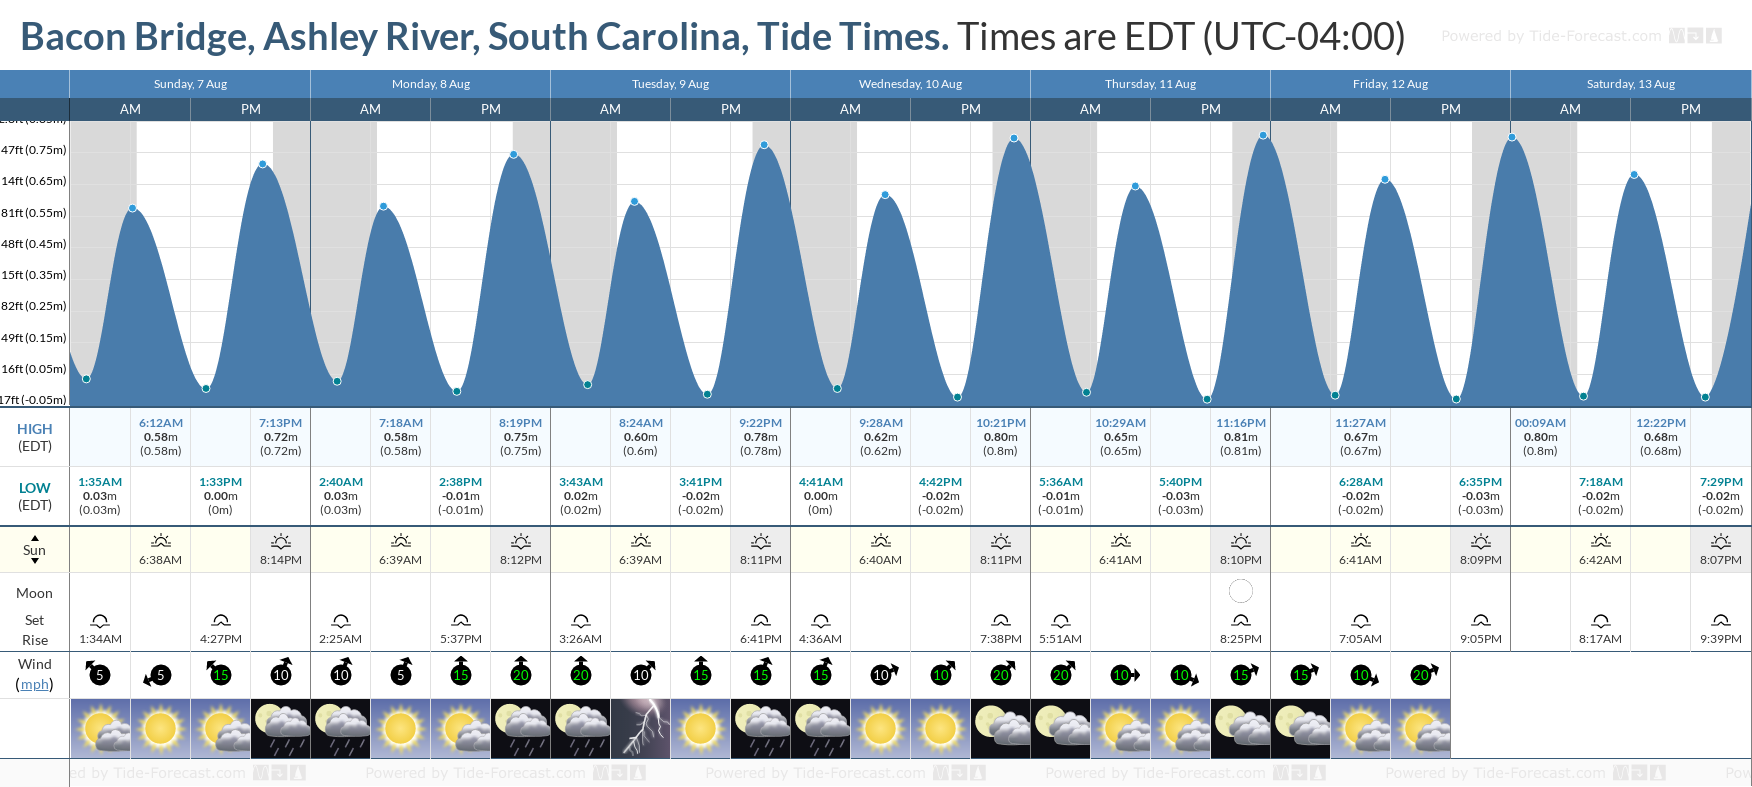 Bacon Bridge, Ashley River, South Carolina Tide Chart including high and low tide tide times for the next 7 days